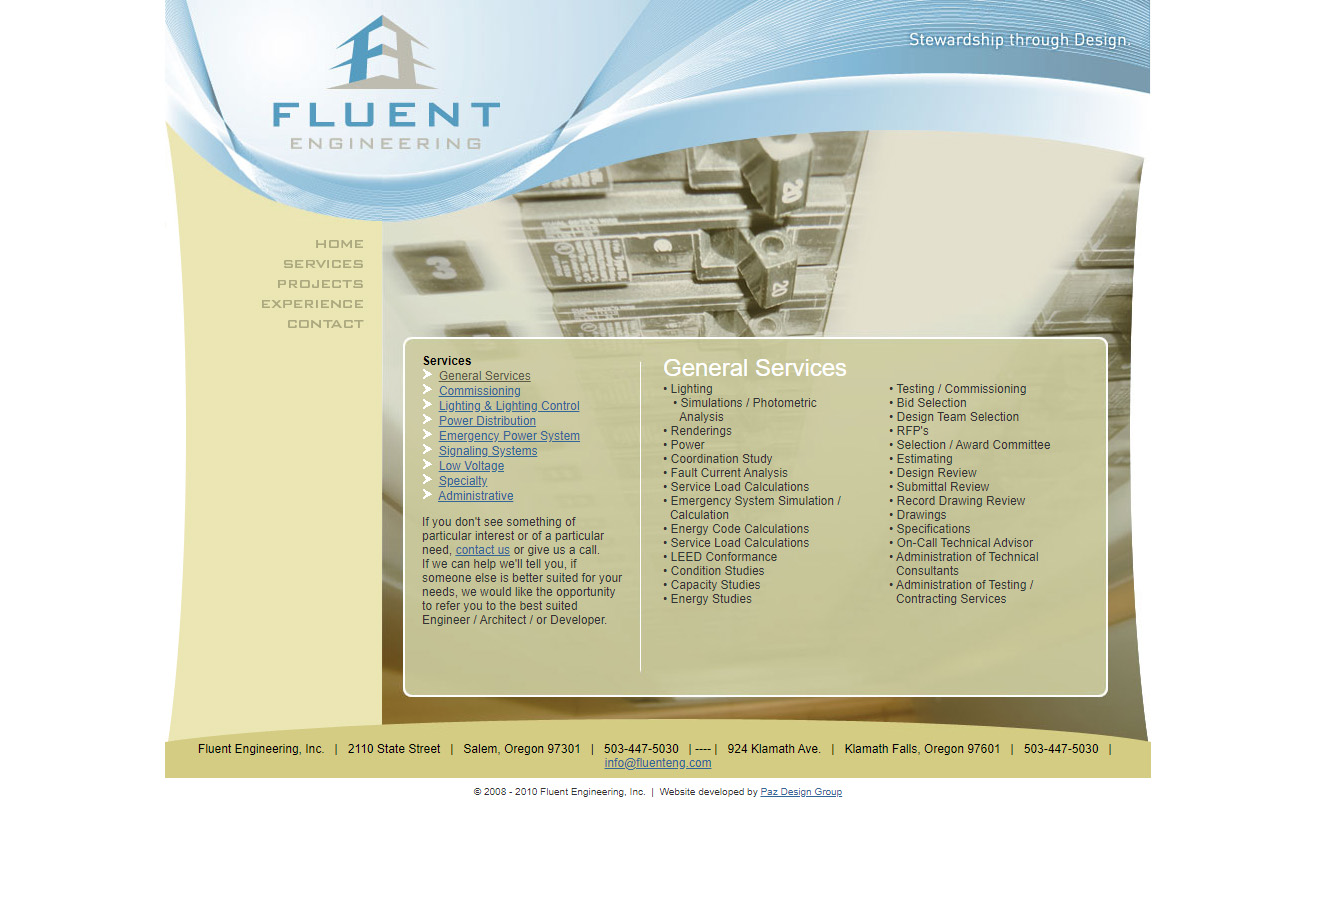 Fluent Engineering Services page Screenshot before redesign work